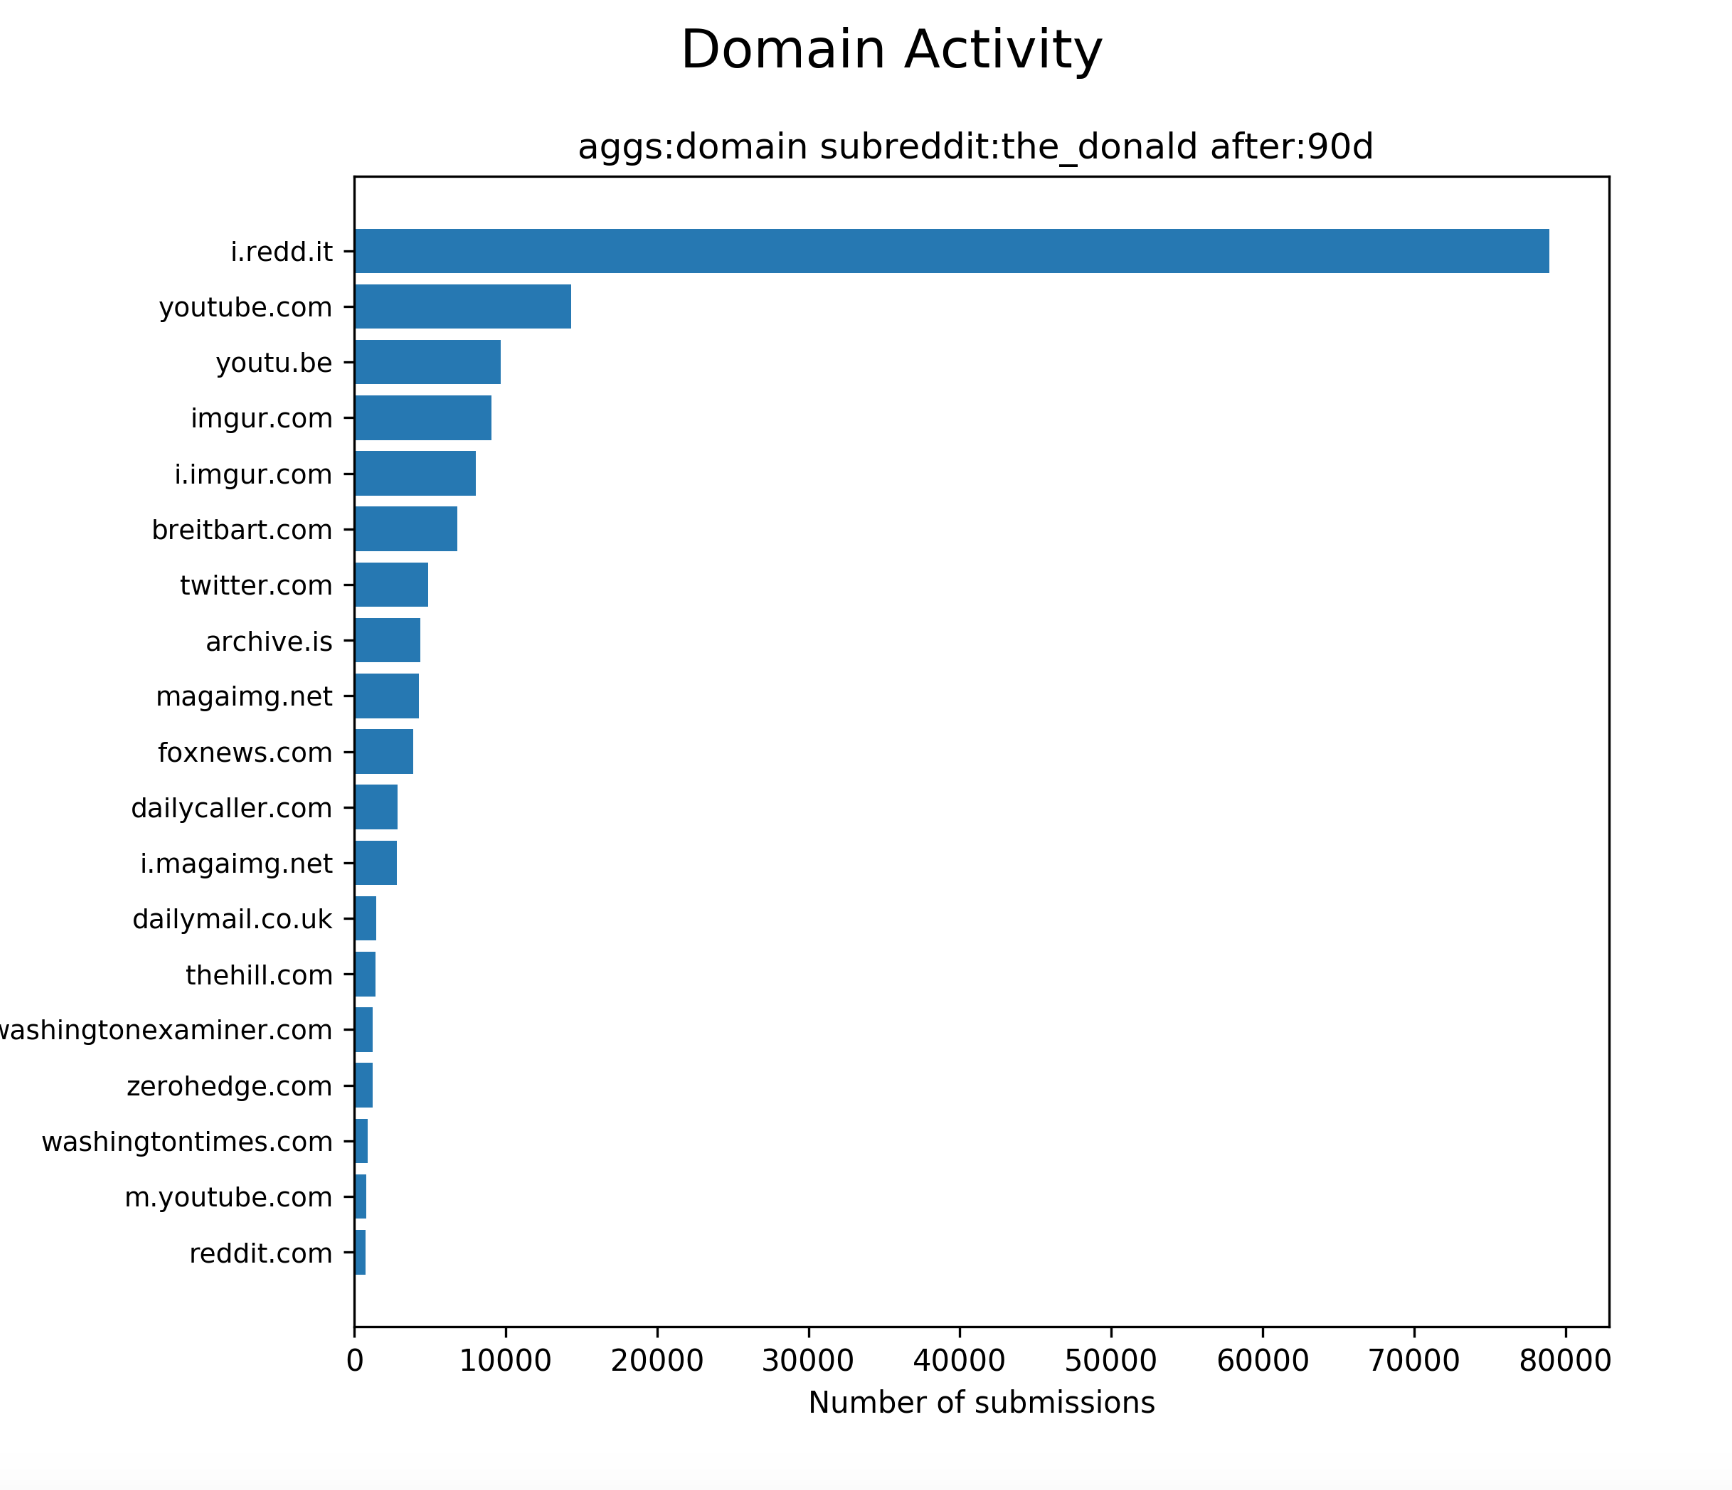 The_Donald outward links by domain frequency